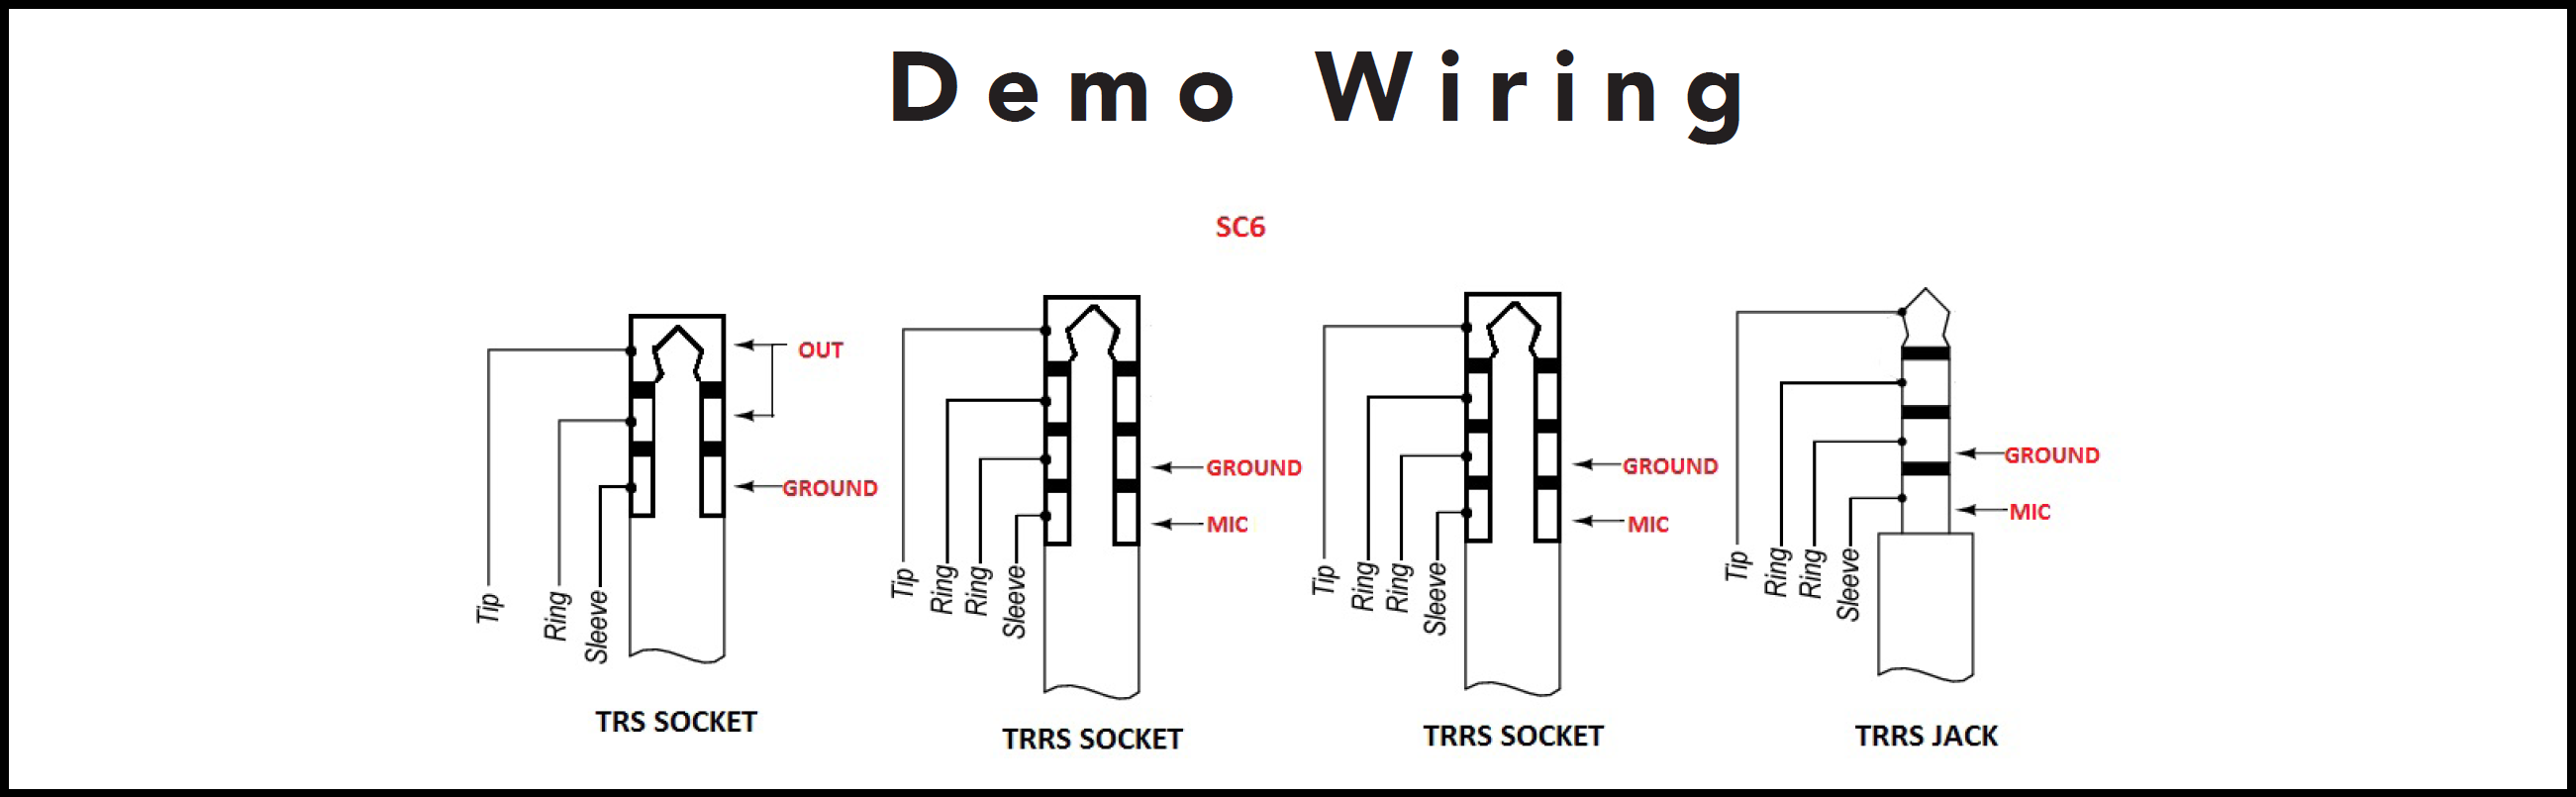 trrs headphone jack wiring diagram rode microphones sc6 dual    trrs    input and    headphone    output  rode microphones sc6 dual    trrs    input and    headphone    output